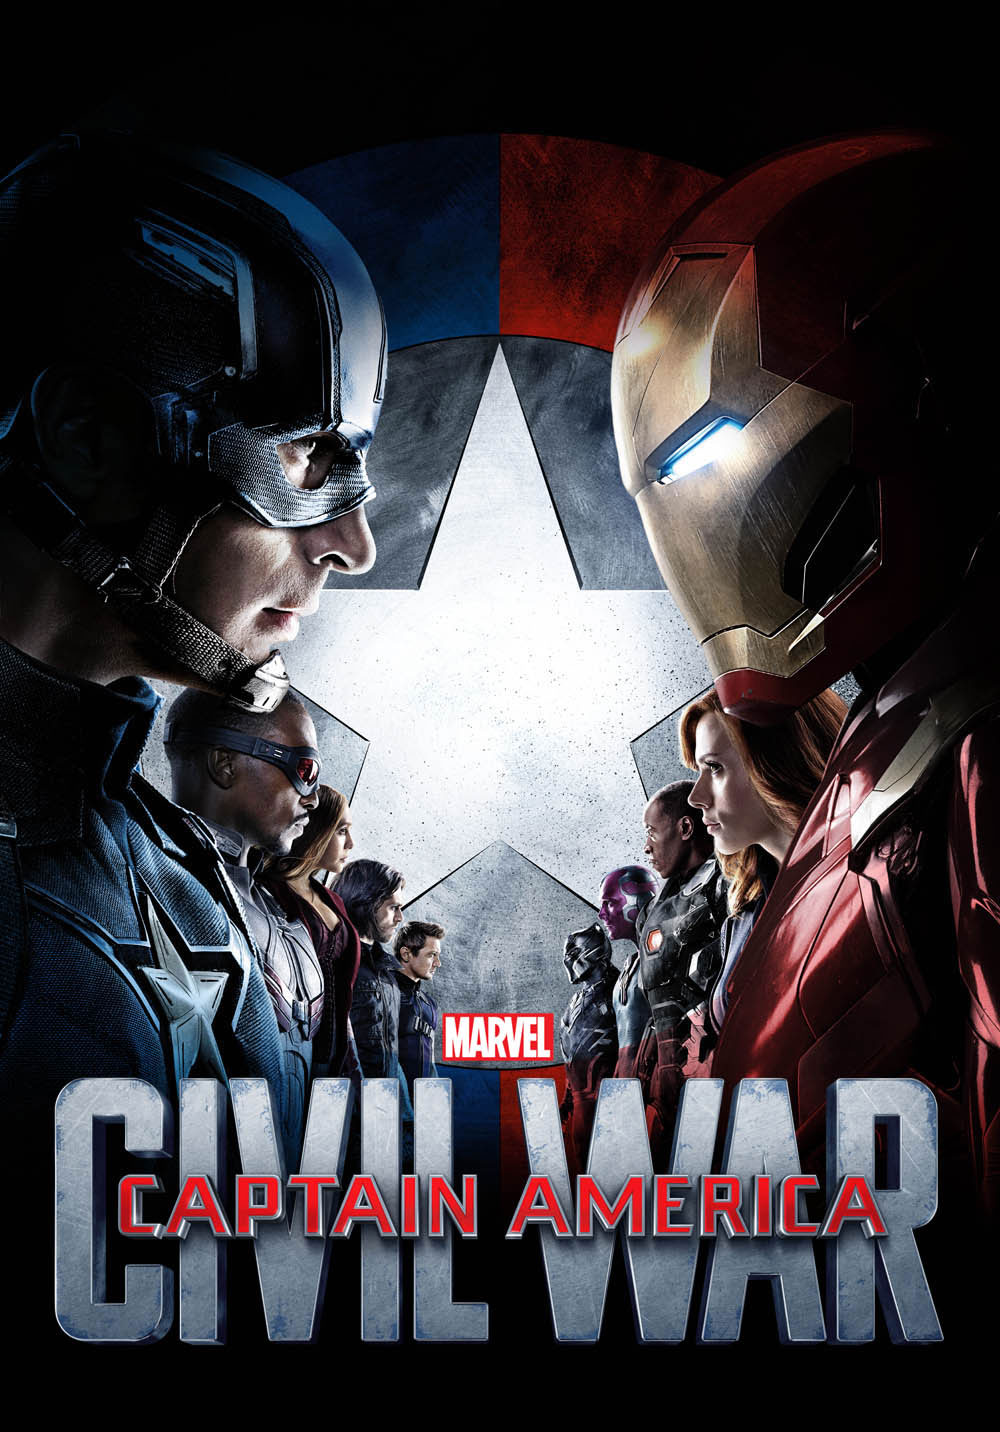 captain-america-civil-war-alternate-poster.jpg